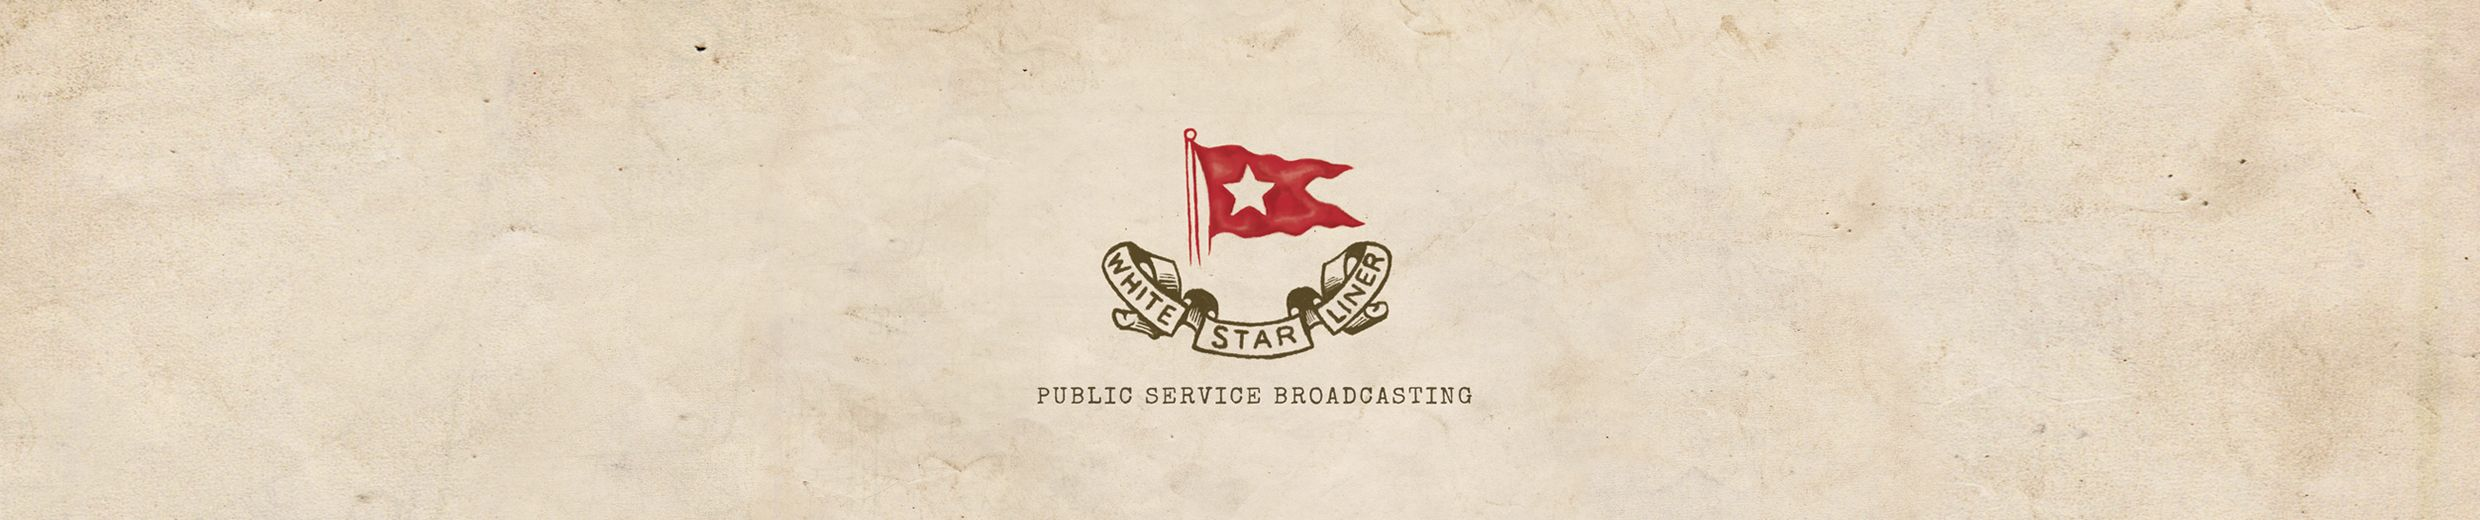 Public Service Broadcasting - Spitfire (Syntax Remix) by